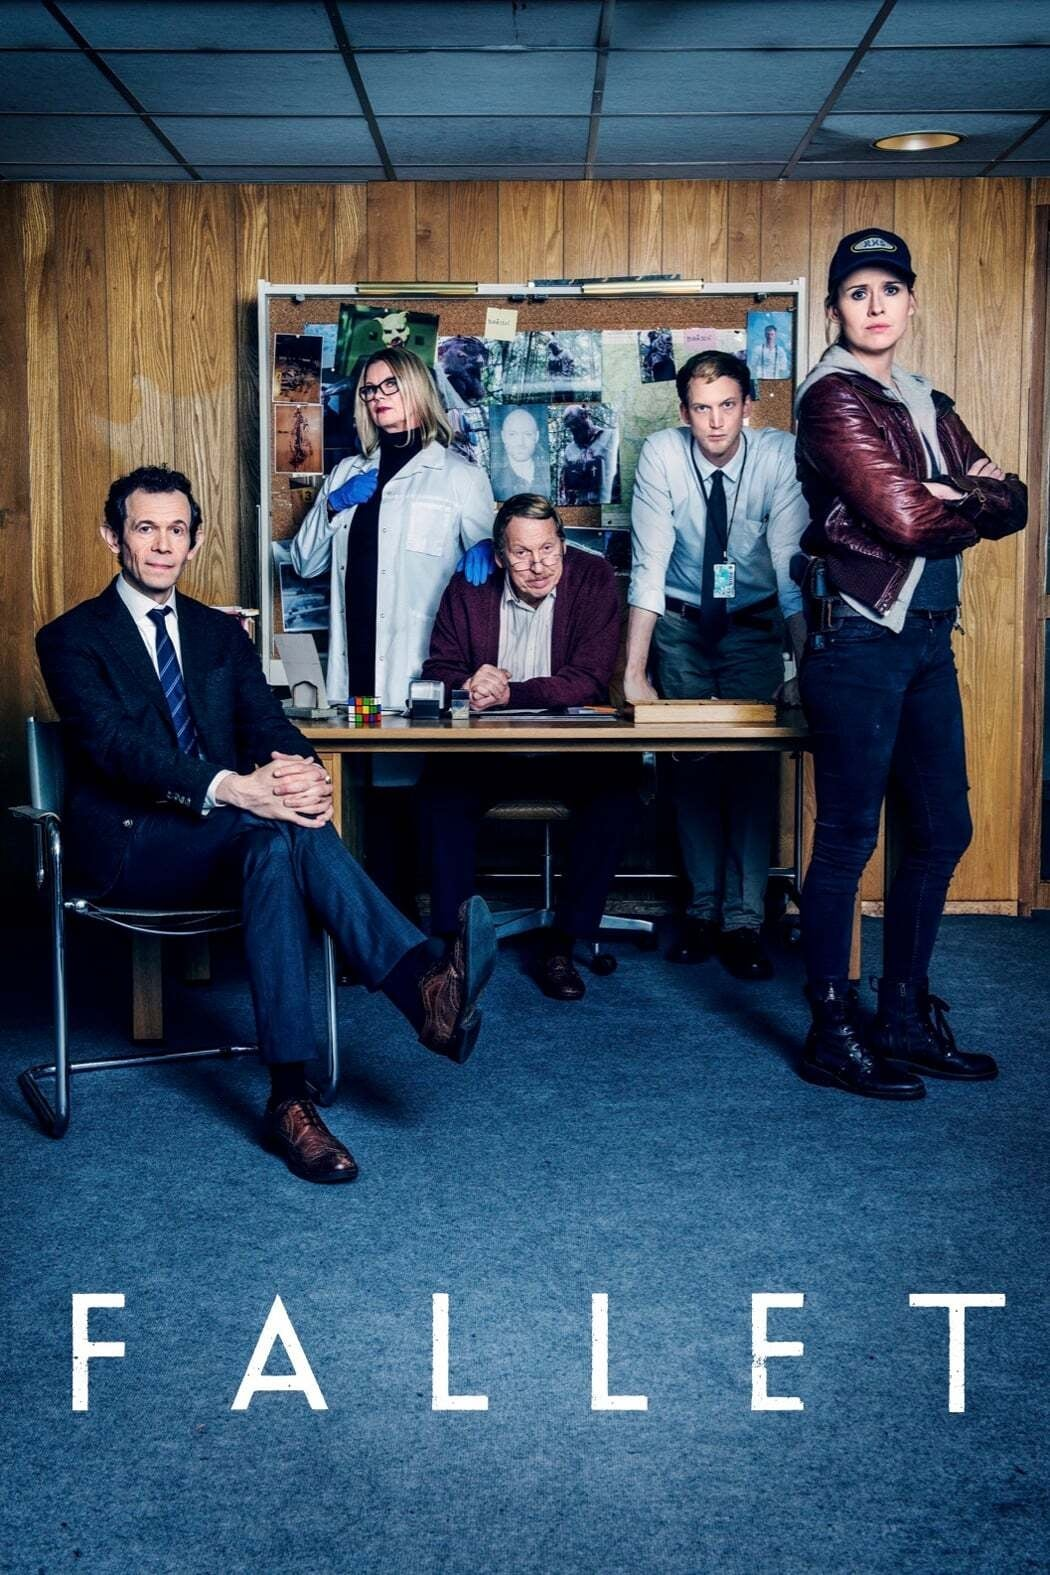 The Case (2017)